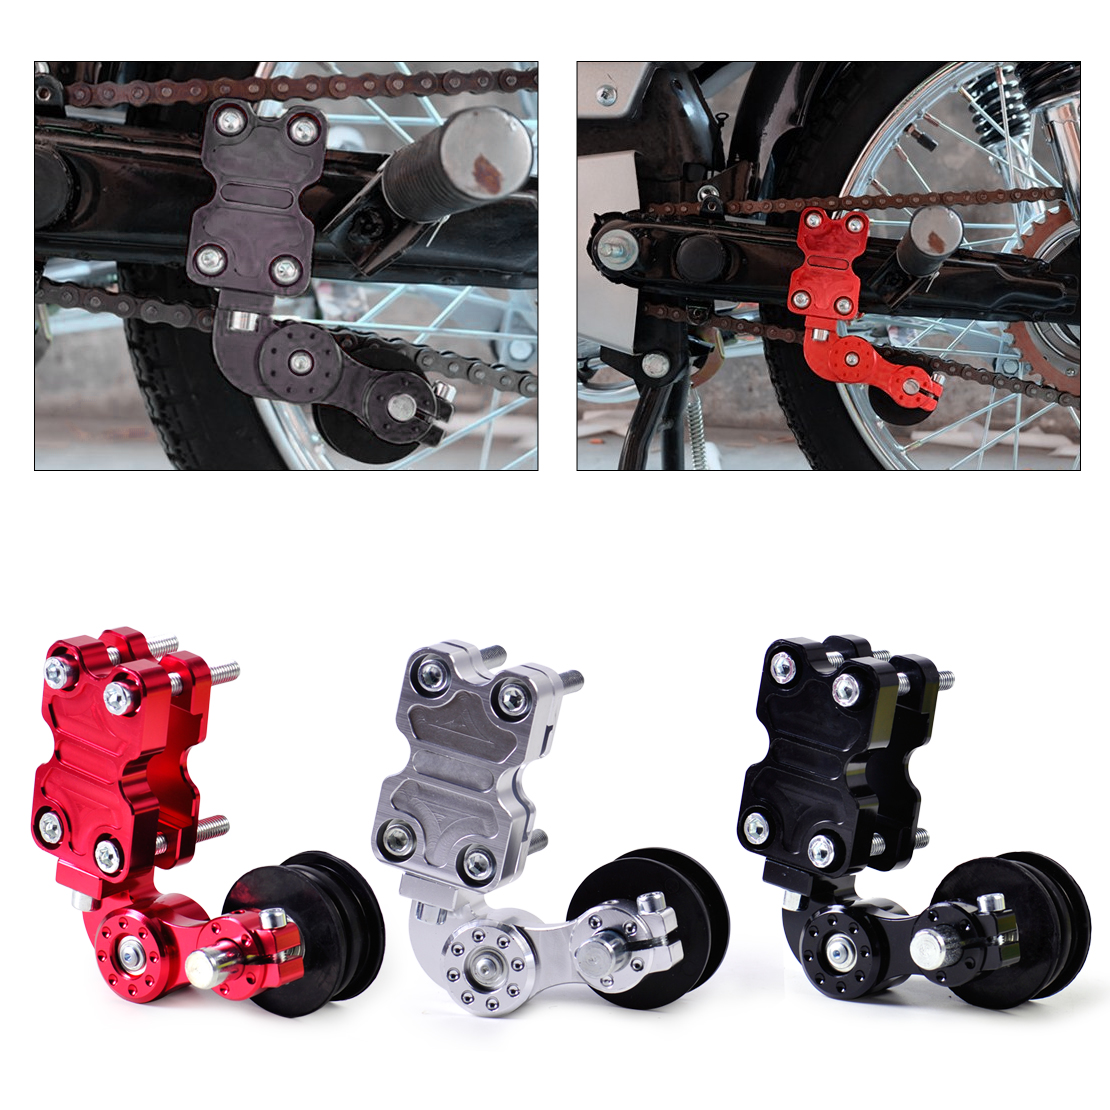 DWCX Motorcycle Adjustable Chain Tensioner Bolt on Roller Motocross for Harley Honda Dirt Street Bike ATV Banshee Suzuki Chopper universal motorcycle chain tensioner bolt on roller chopper atv dirt street bike for suzuki rg 125 vespa 150 vba t4 180ss all ye